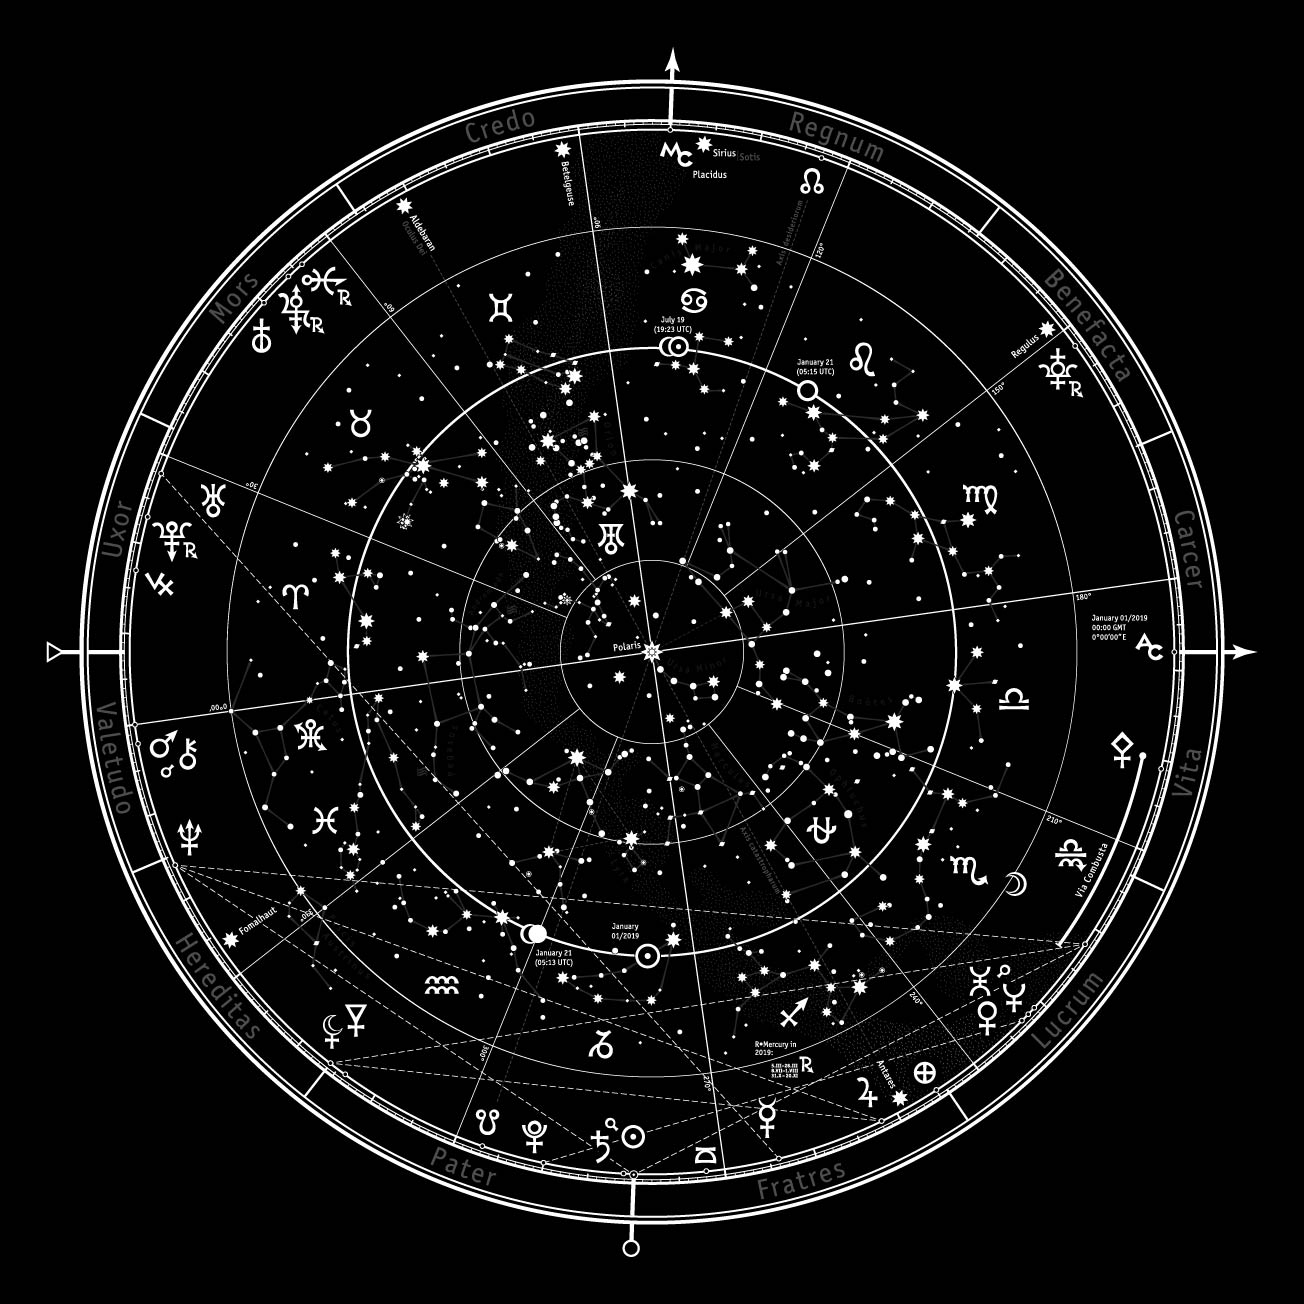 Astrological Celestial map of Northern Hemisphere Horoscope on January 1, 2019. Detailed outline chart with symbols and signs of Zodiac, planets, asteroids, etc. by MysticaLink.